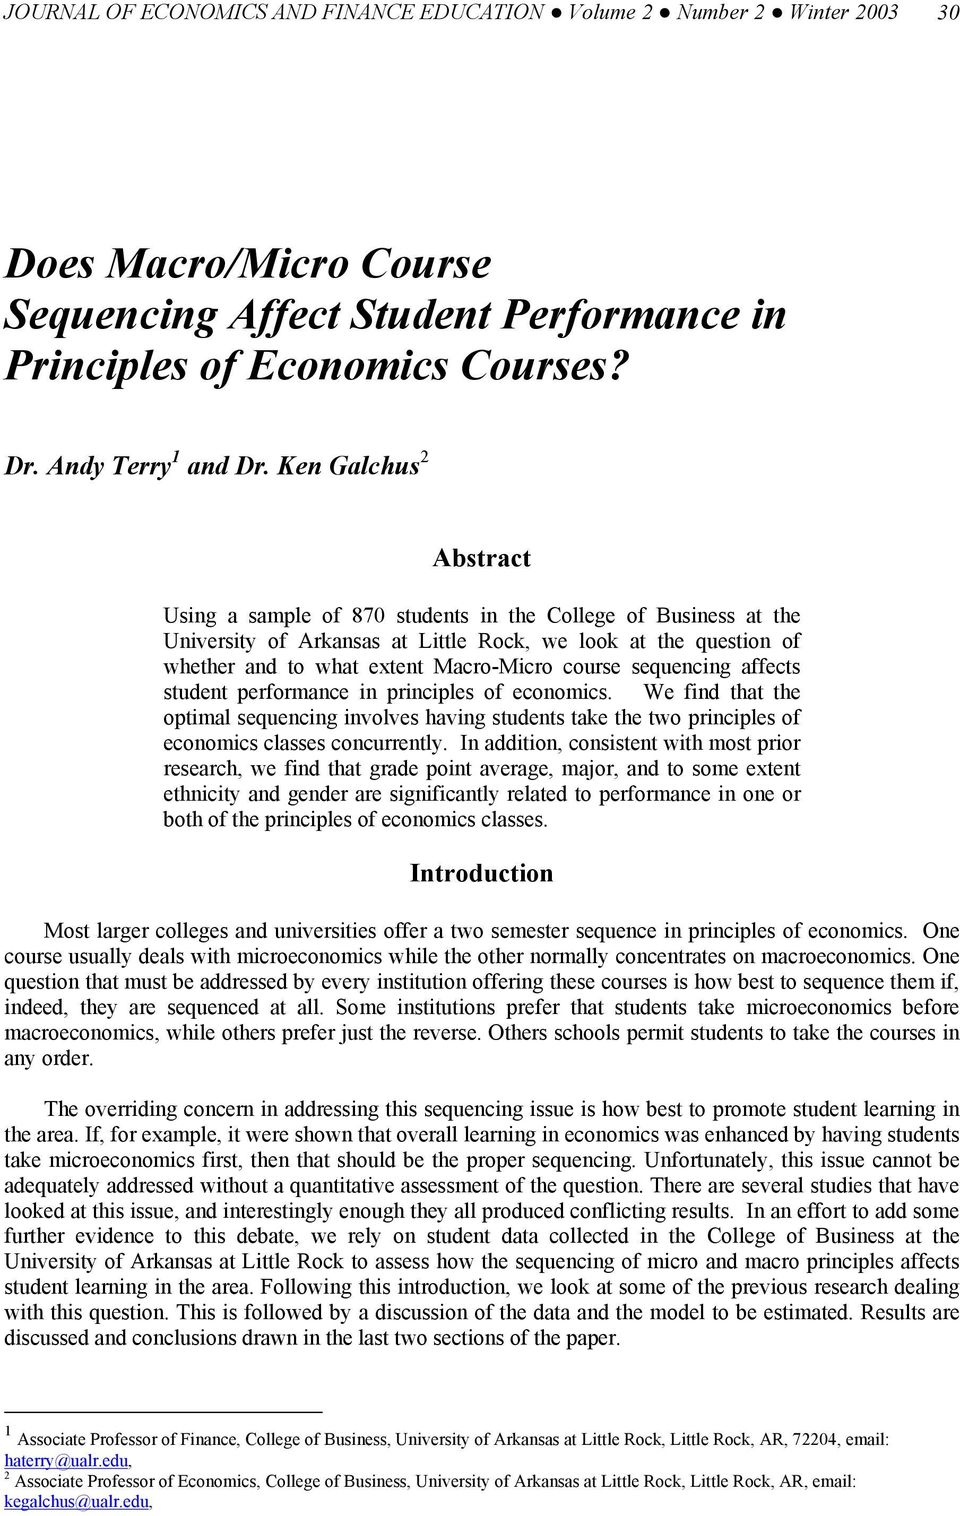 sequencing affects student performance in principles of economics. We find that the optimal sequencing involves having students take the two principles of economics classes concurrently.